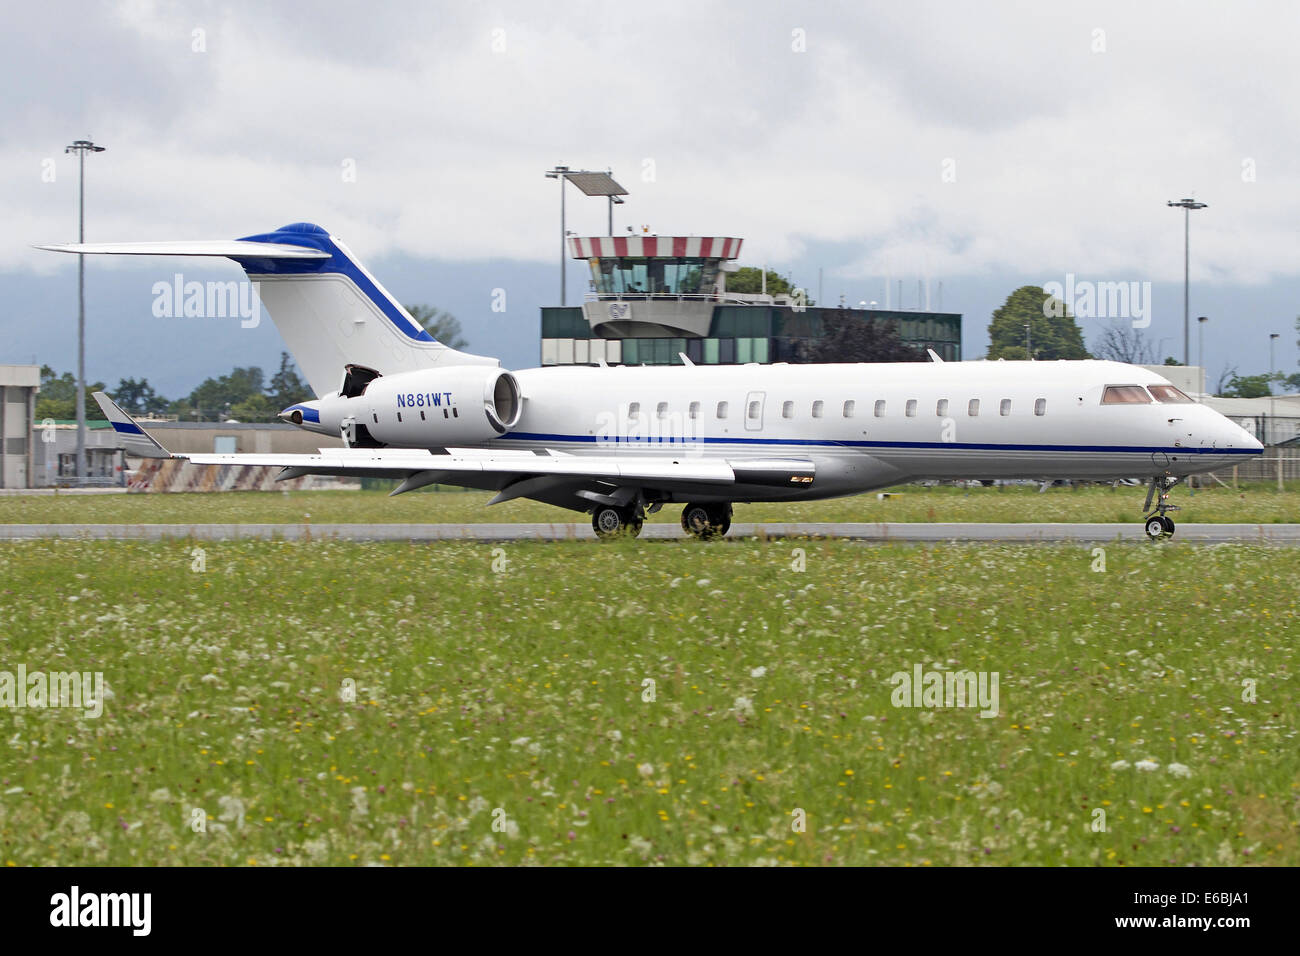 Bombardier BD-700 1A10 Global Express at Turin Airport, Italy. - Stock Image